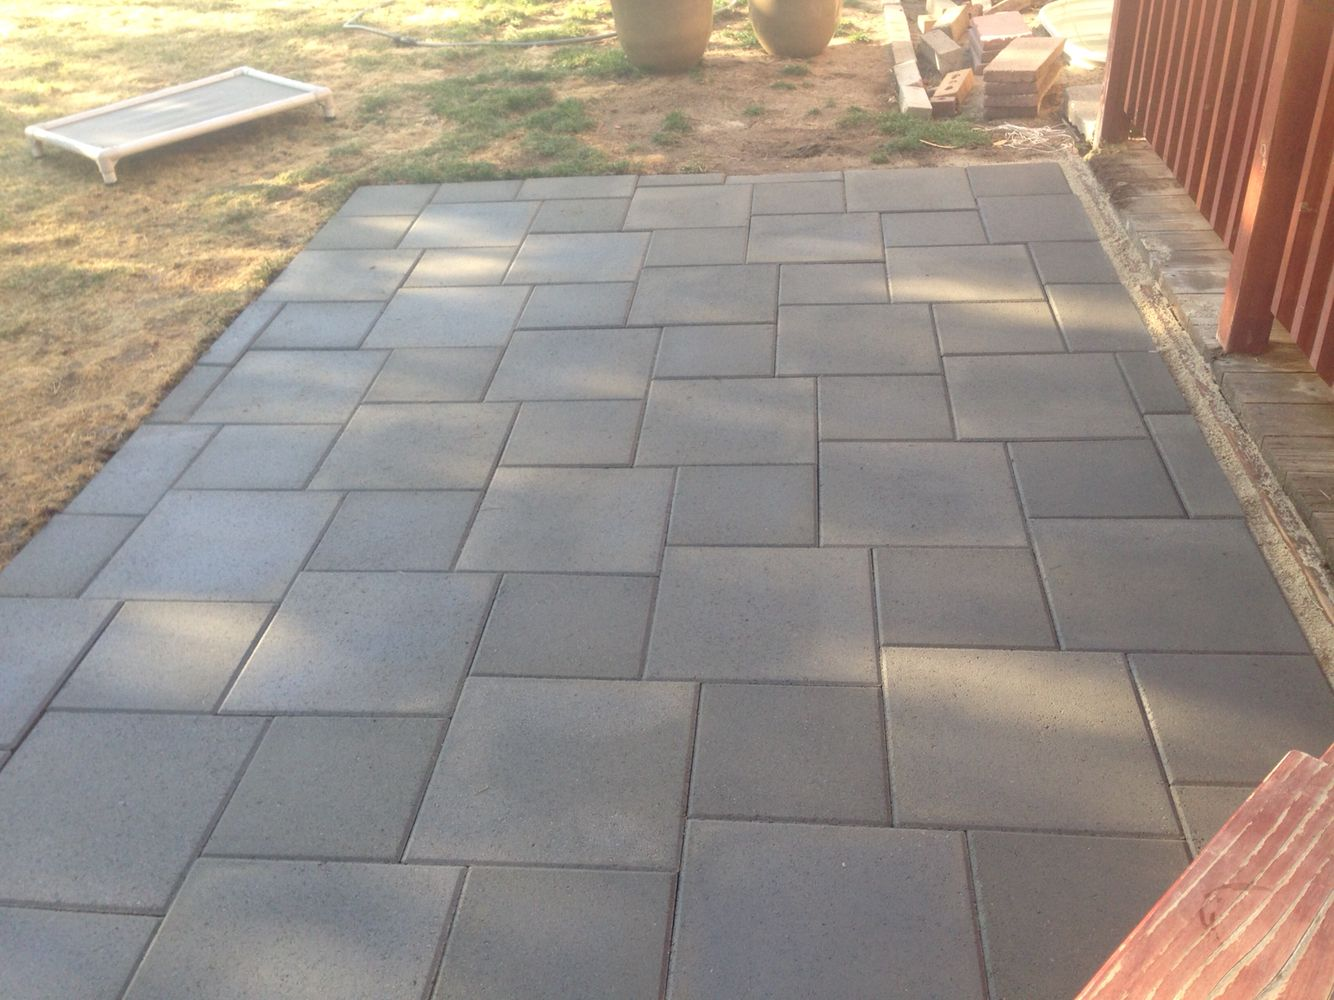 patio of inexpensive concrete pavers more - Stone Patio Ideas On A Budget